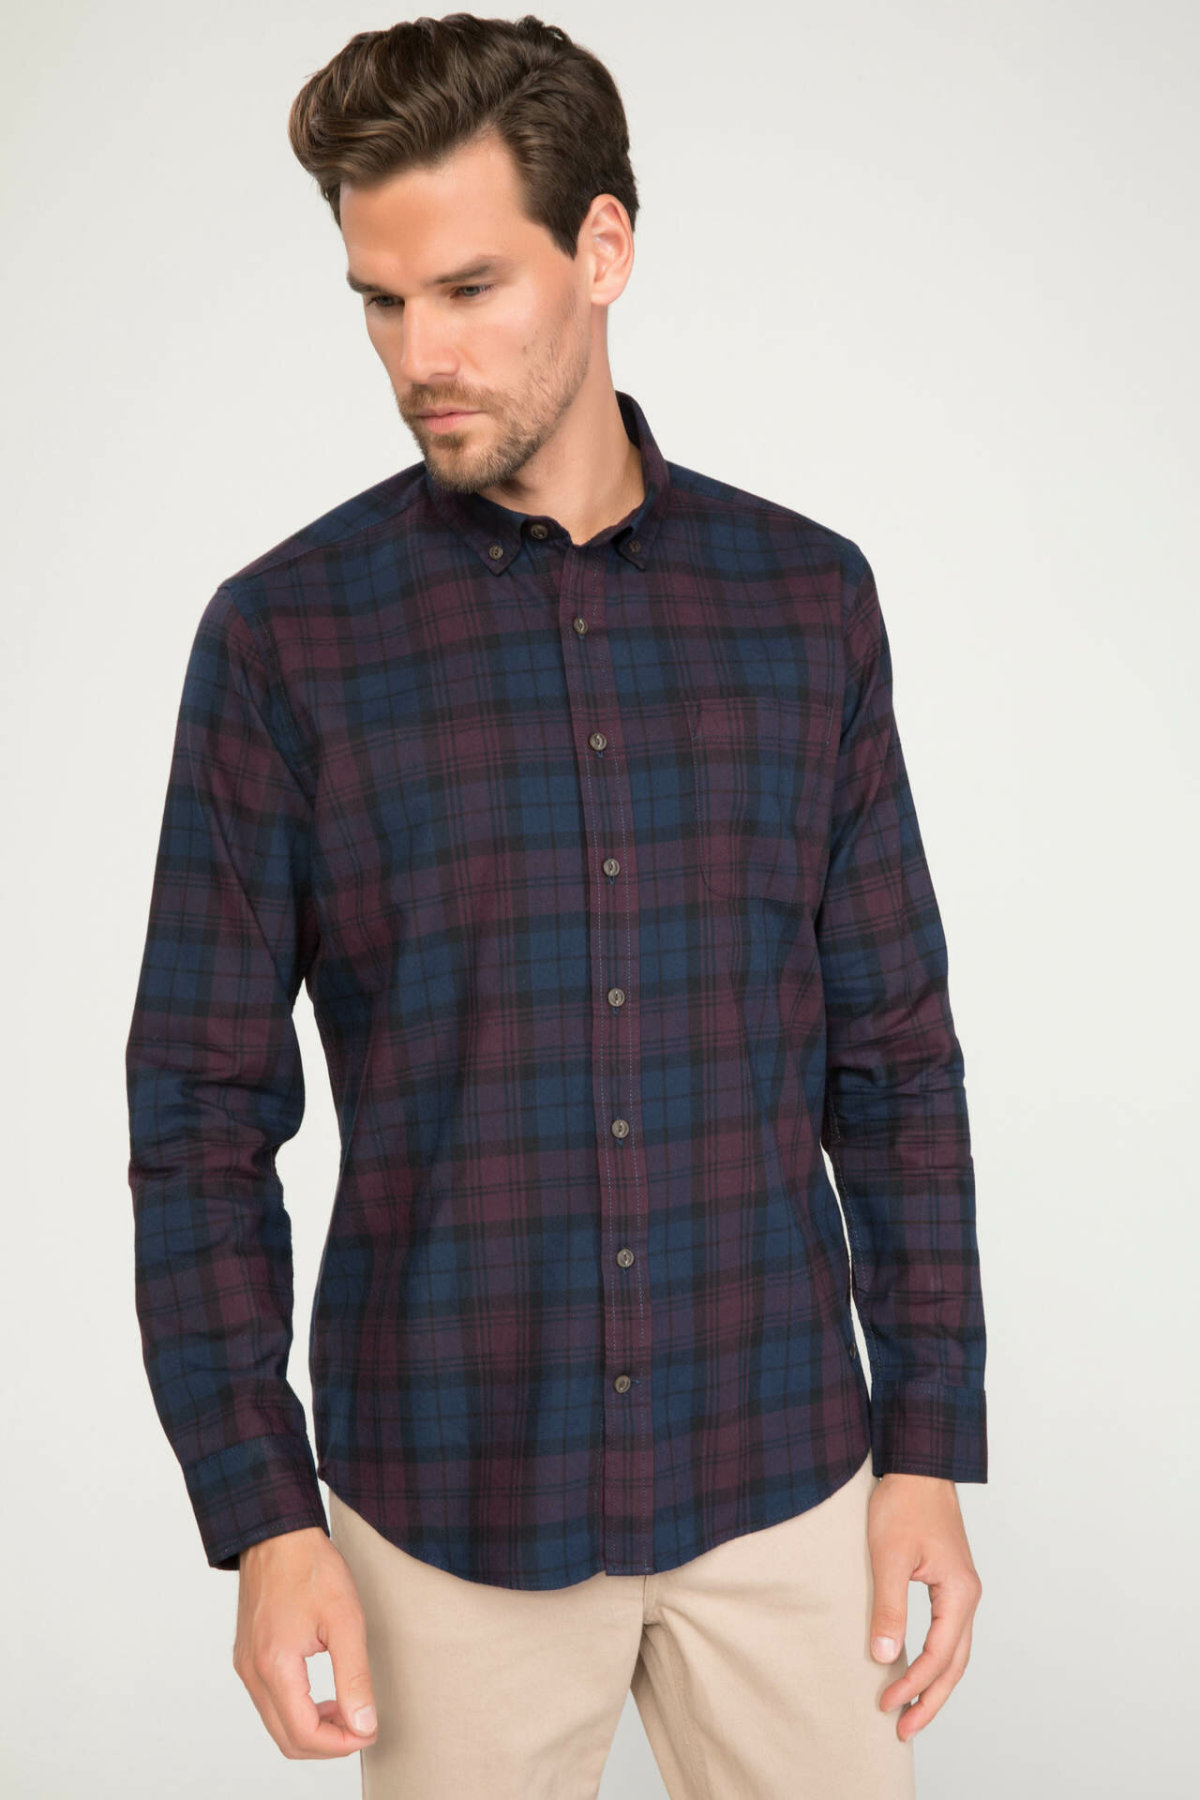 DeFacto Man Dark Color Long Sleeve Shirt Men Casual Plaid Turn-down Collar Shirt Male Top Cloth-J1417AZ18WN